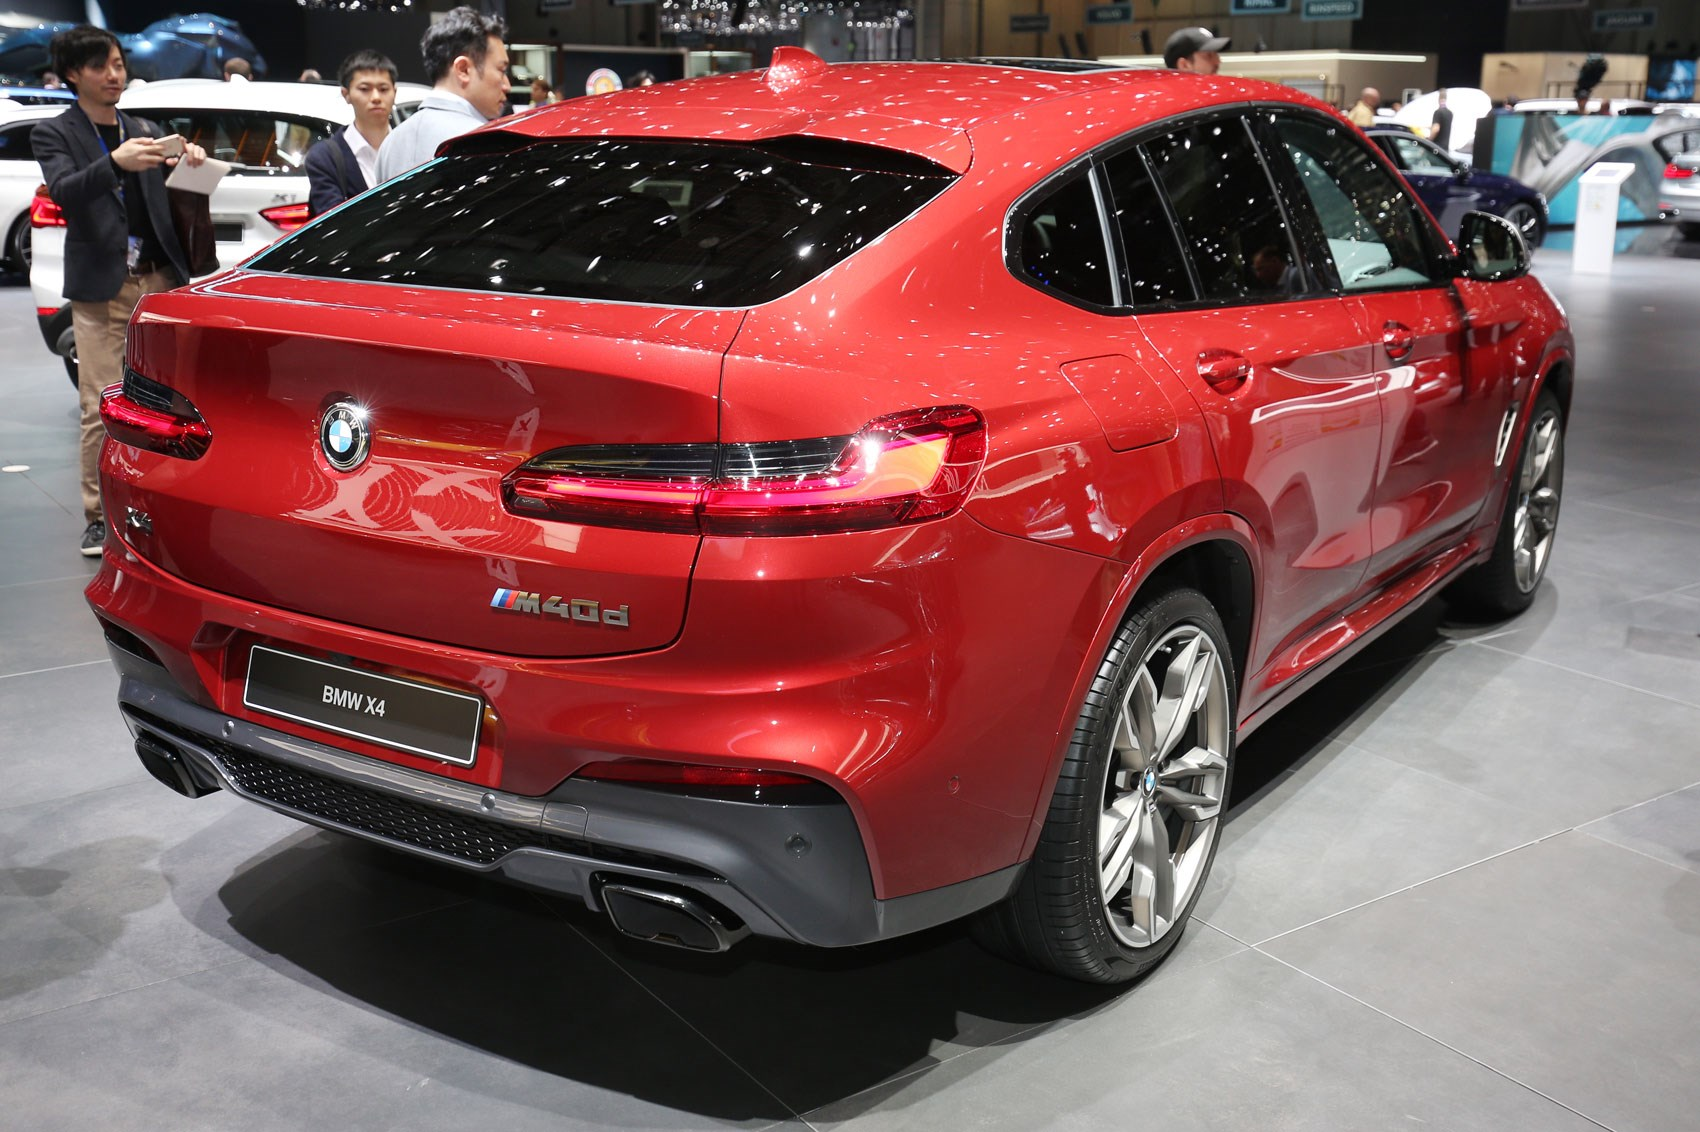 generation x hot bmw x4 m40i coming to new york show by car magazine. Black Bedroom Furniture Sets. Home Design Ideas